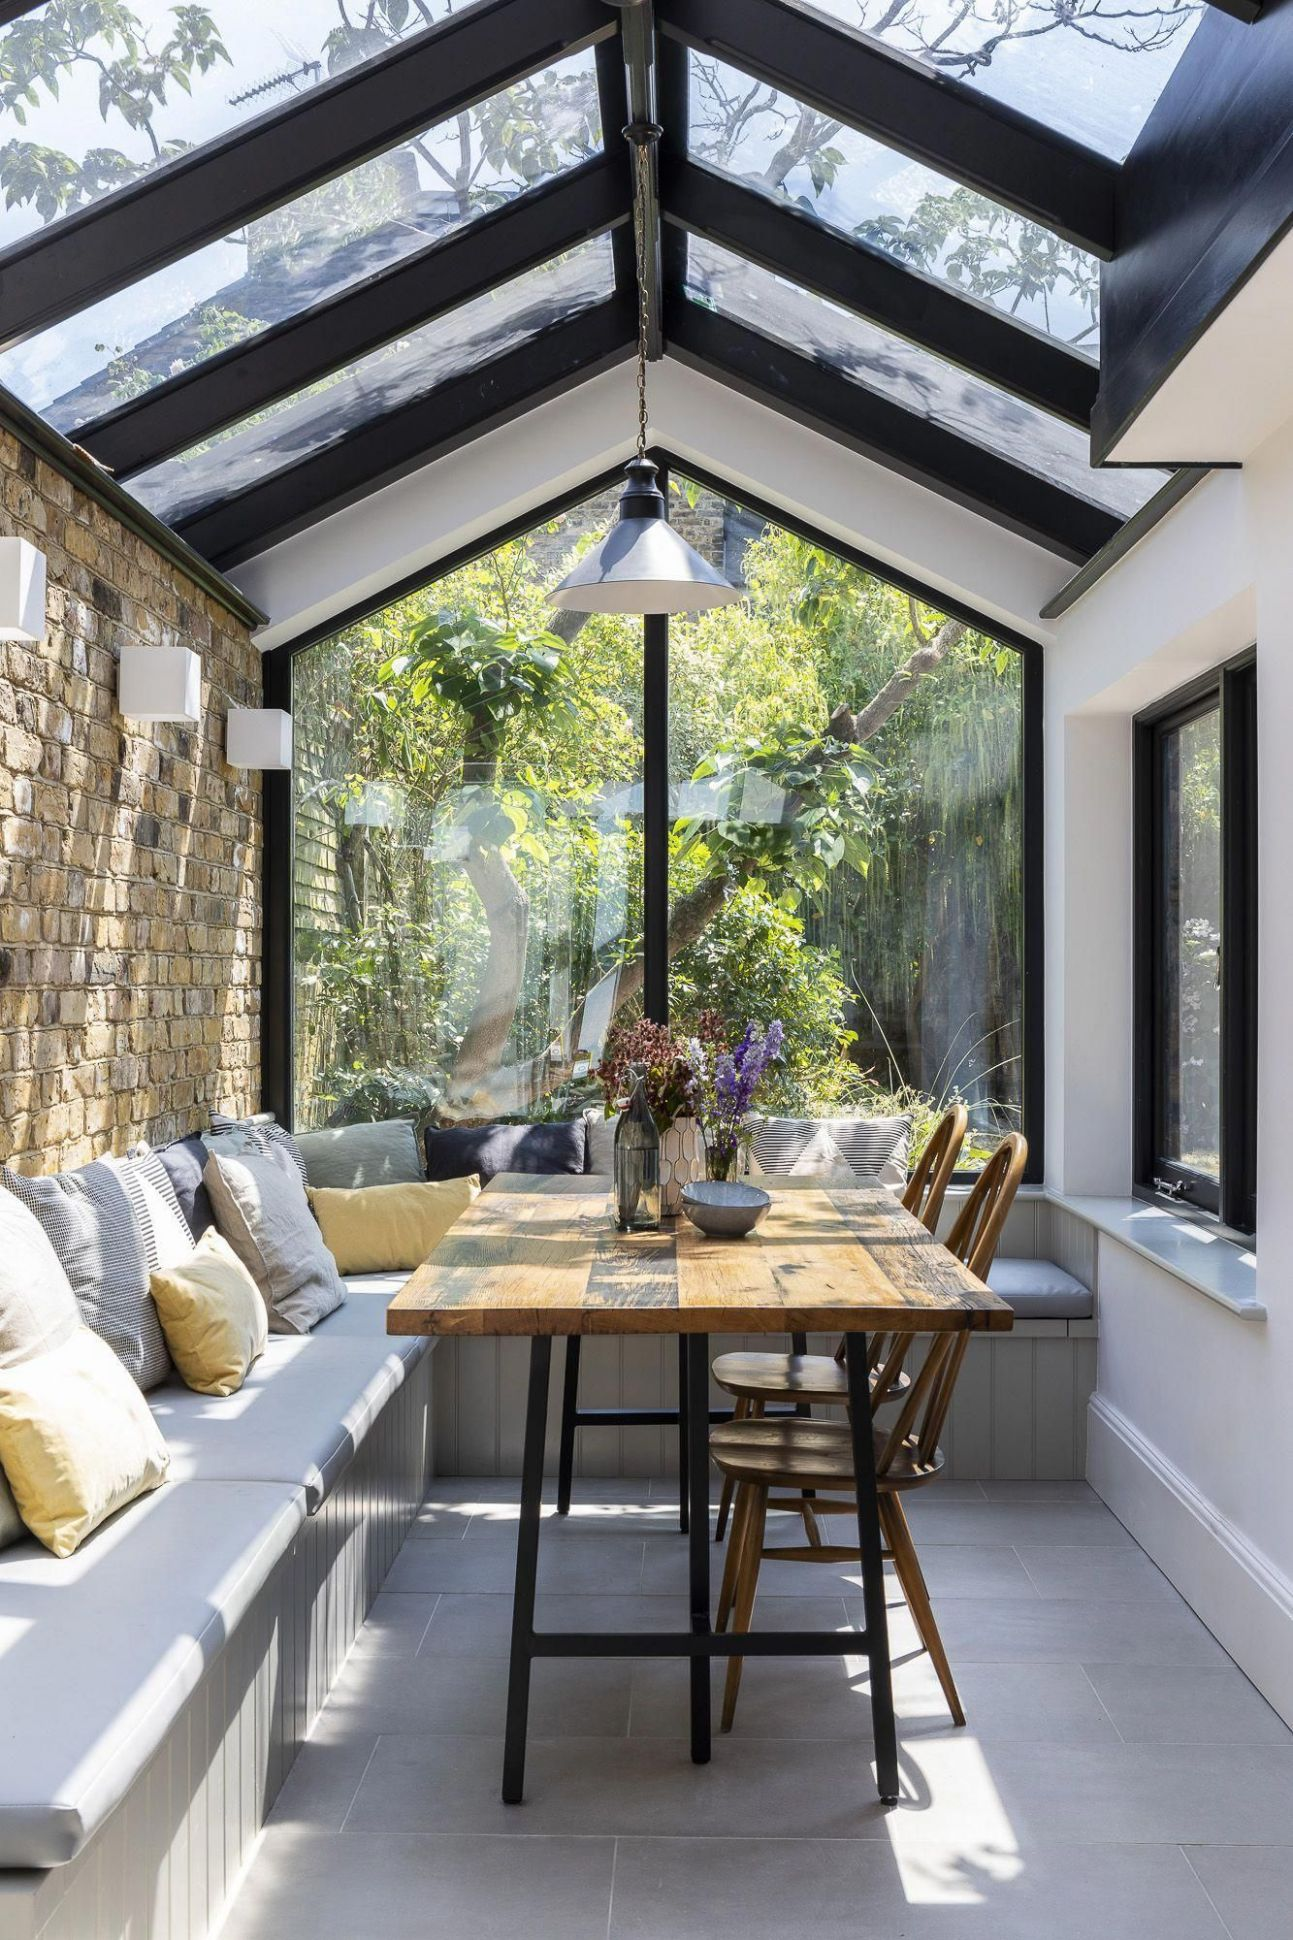 9 Stunning Sunroom Design Ideas - sunroom ideas modern